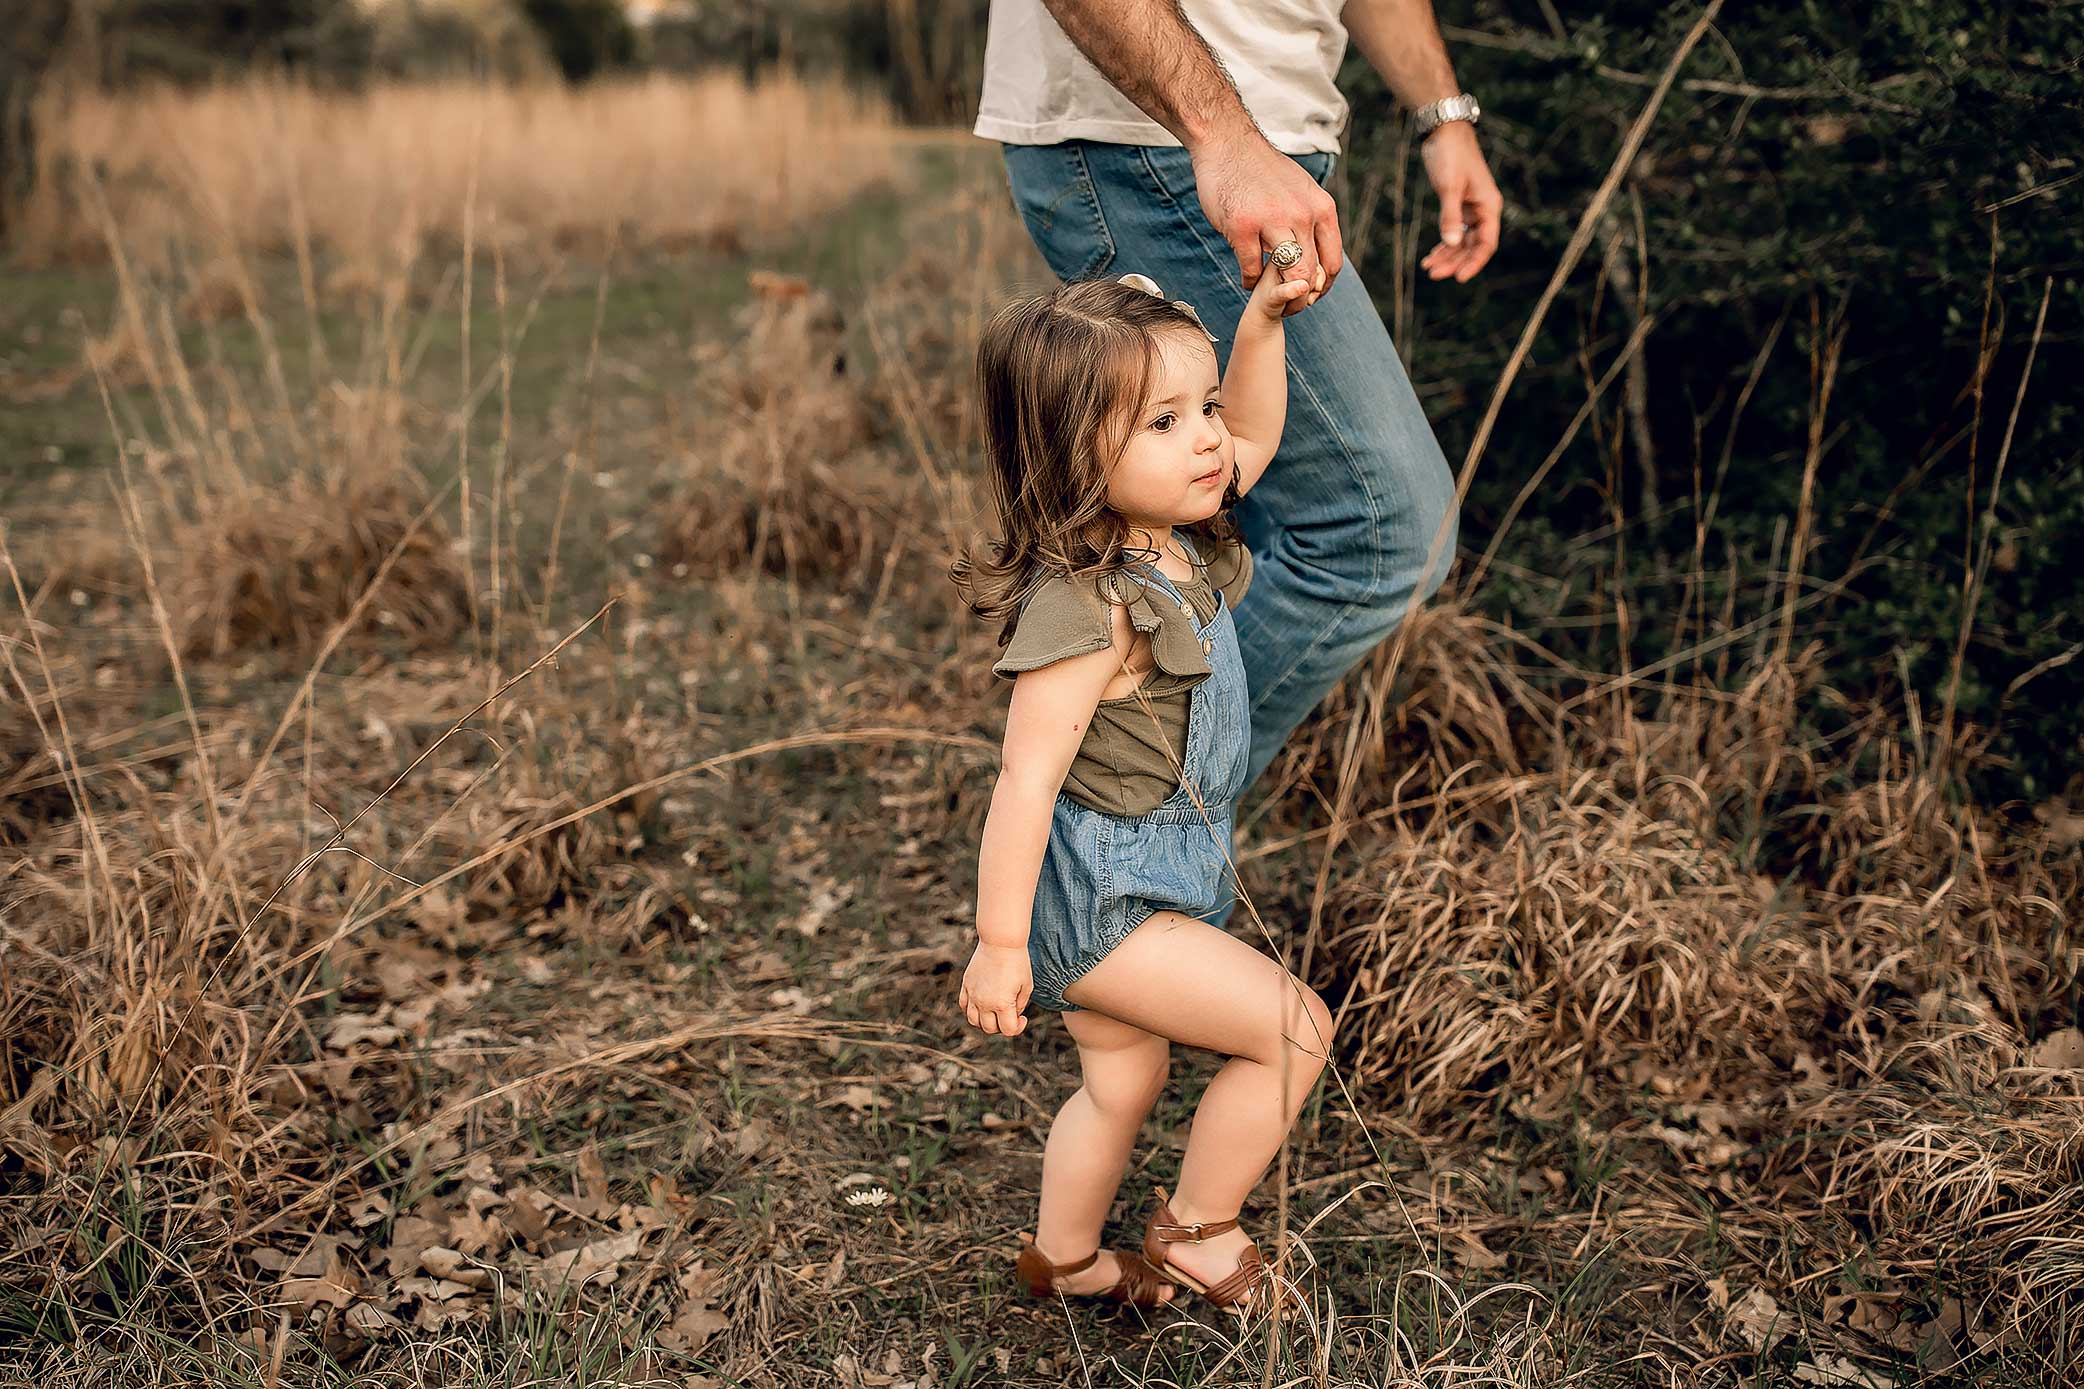 shelby-schiller-photography-sunset-family-pictures-spring-2019-44.jpg